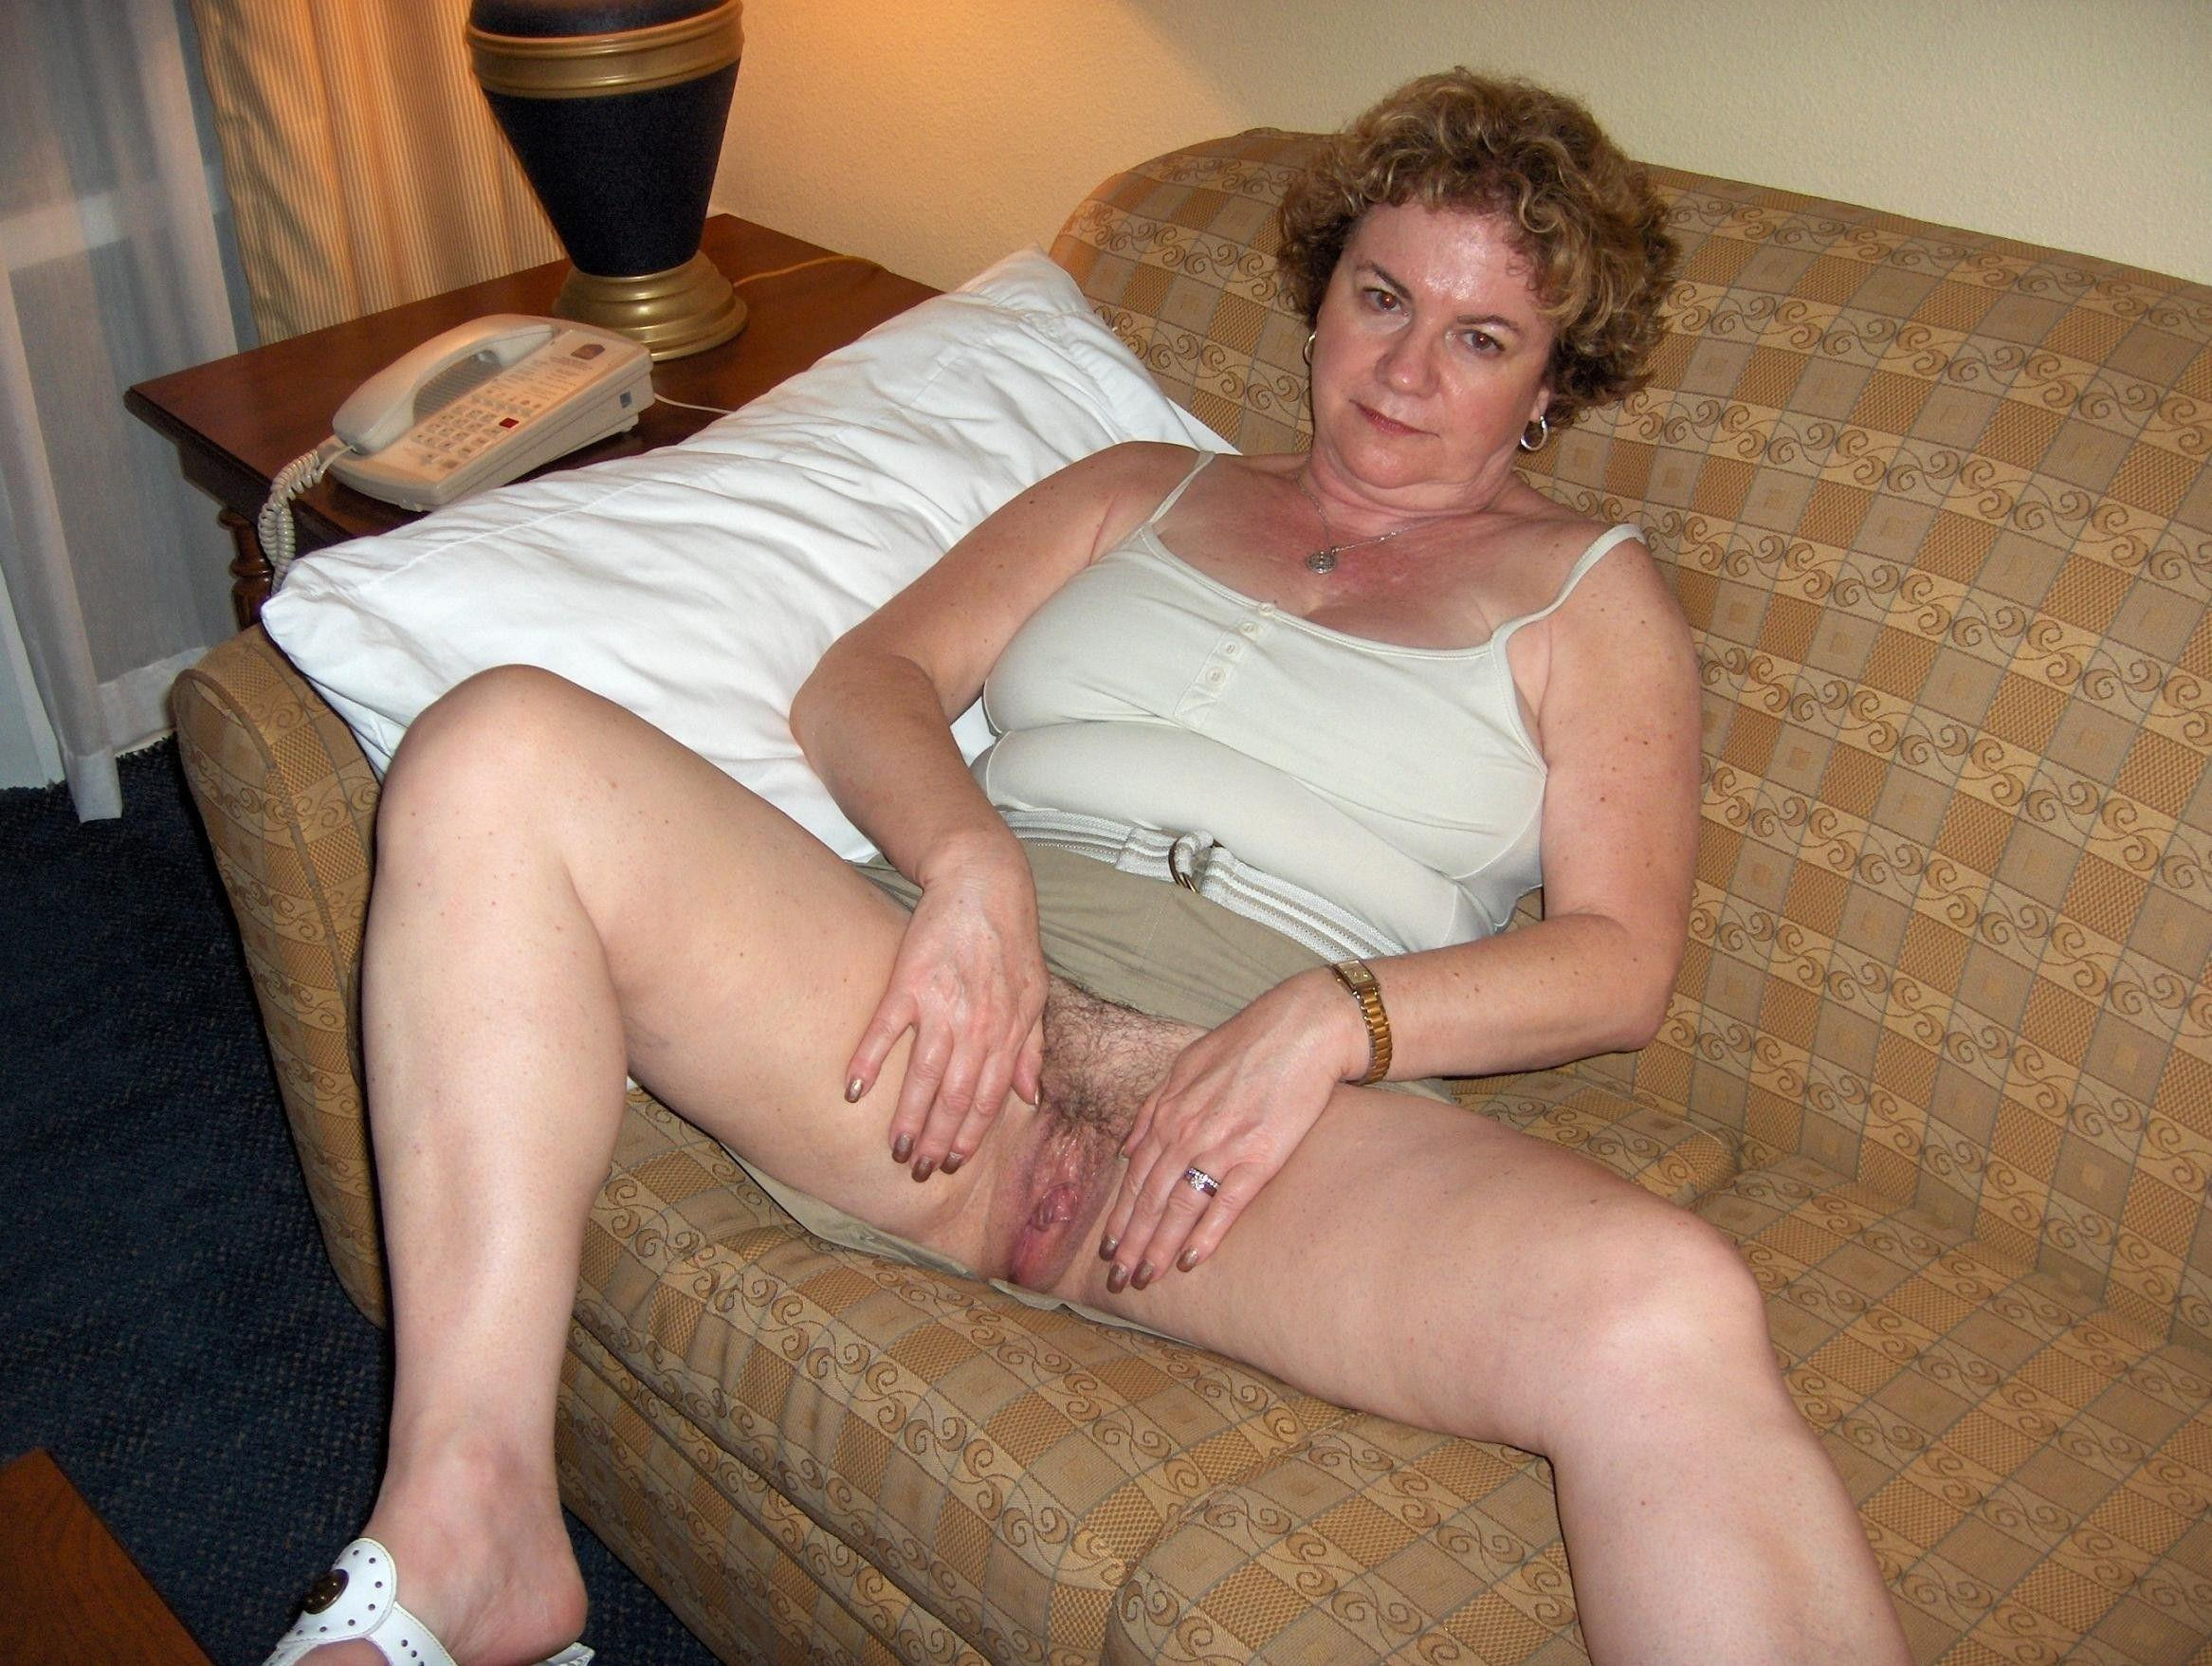 Amateur Porn Housewife amateur housewife tgp . hot naked pics.